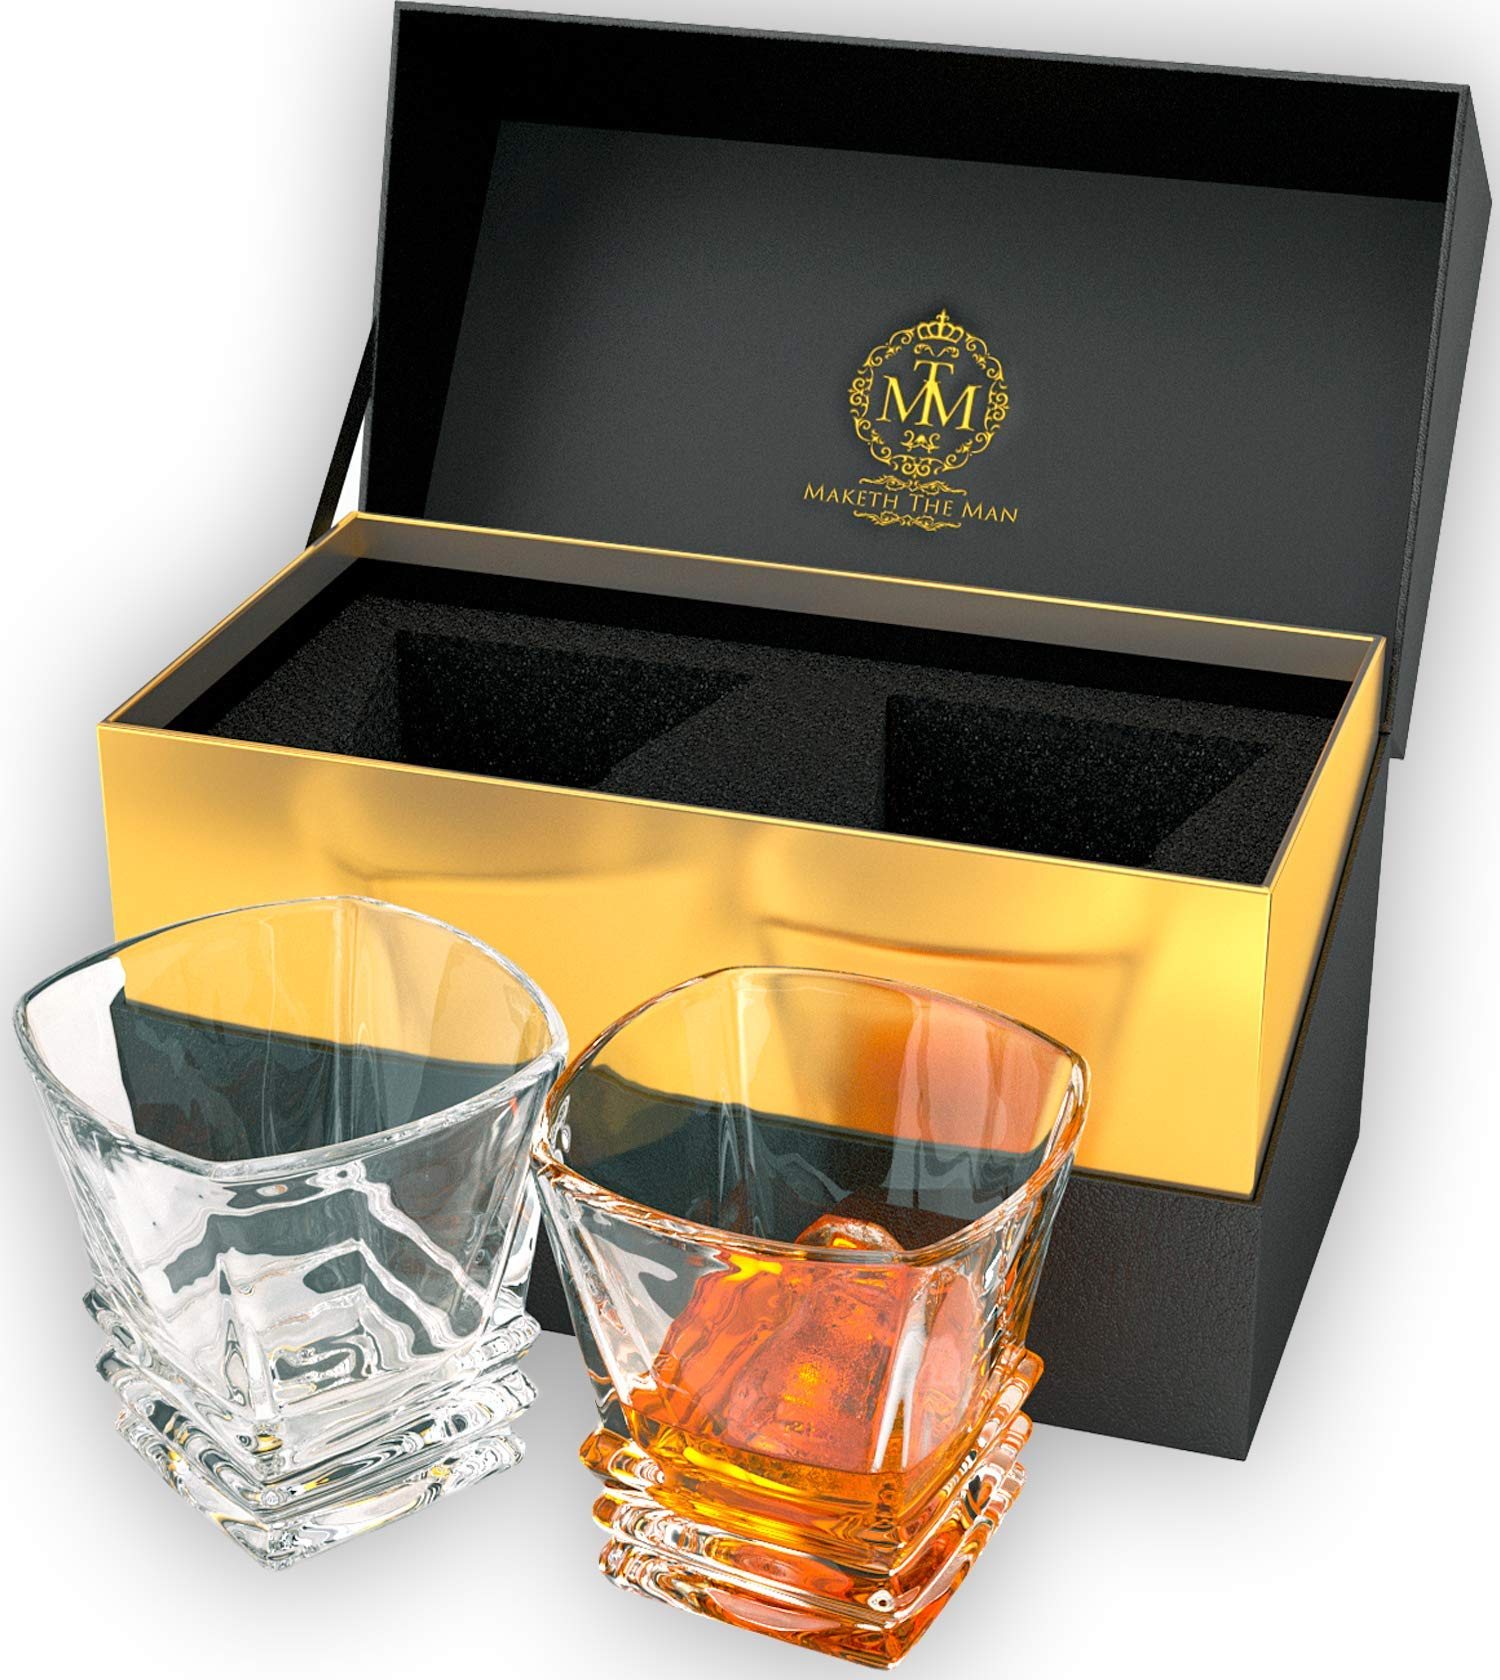 Premium Quality Art Deco Whiskey Glasses. Genuine Lead Free Crystal Glasses Set Of 2 In Stylish Gift Box. Dishwasher Safe. Double Old Fashioned Glasses, 10oz Tumblers For Whisky, Scotch Or Bourbon. by Maketh The Man